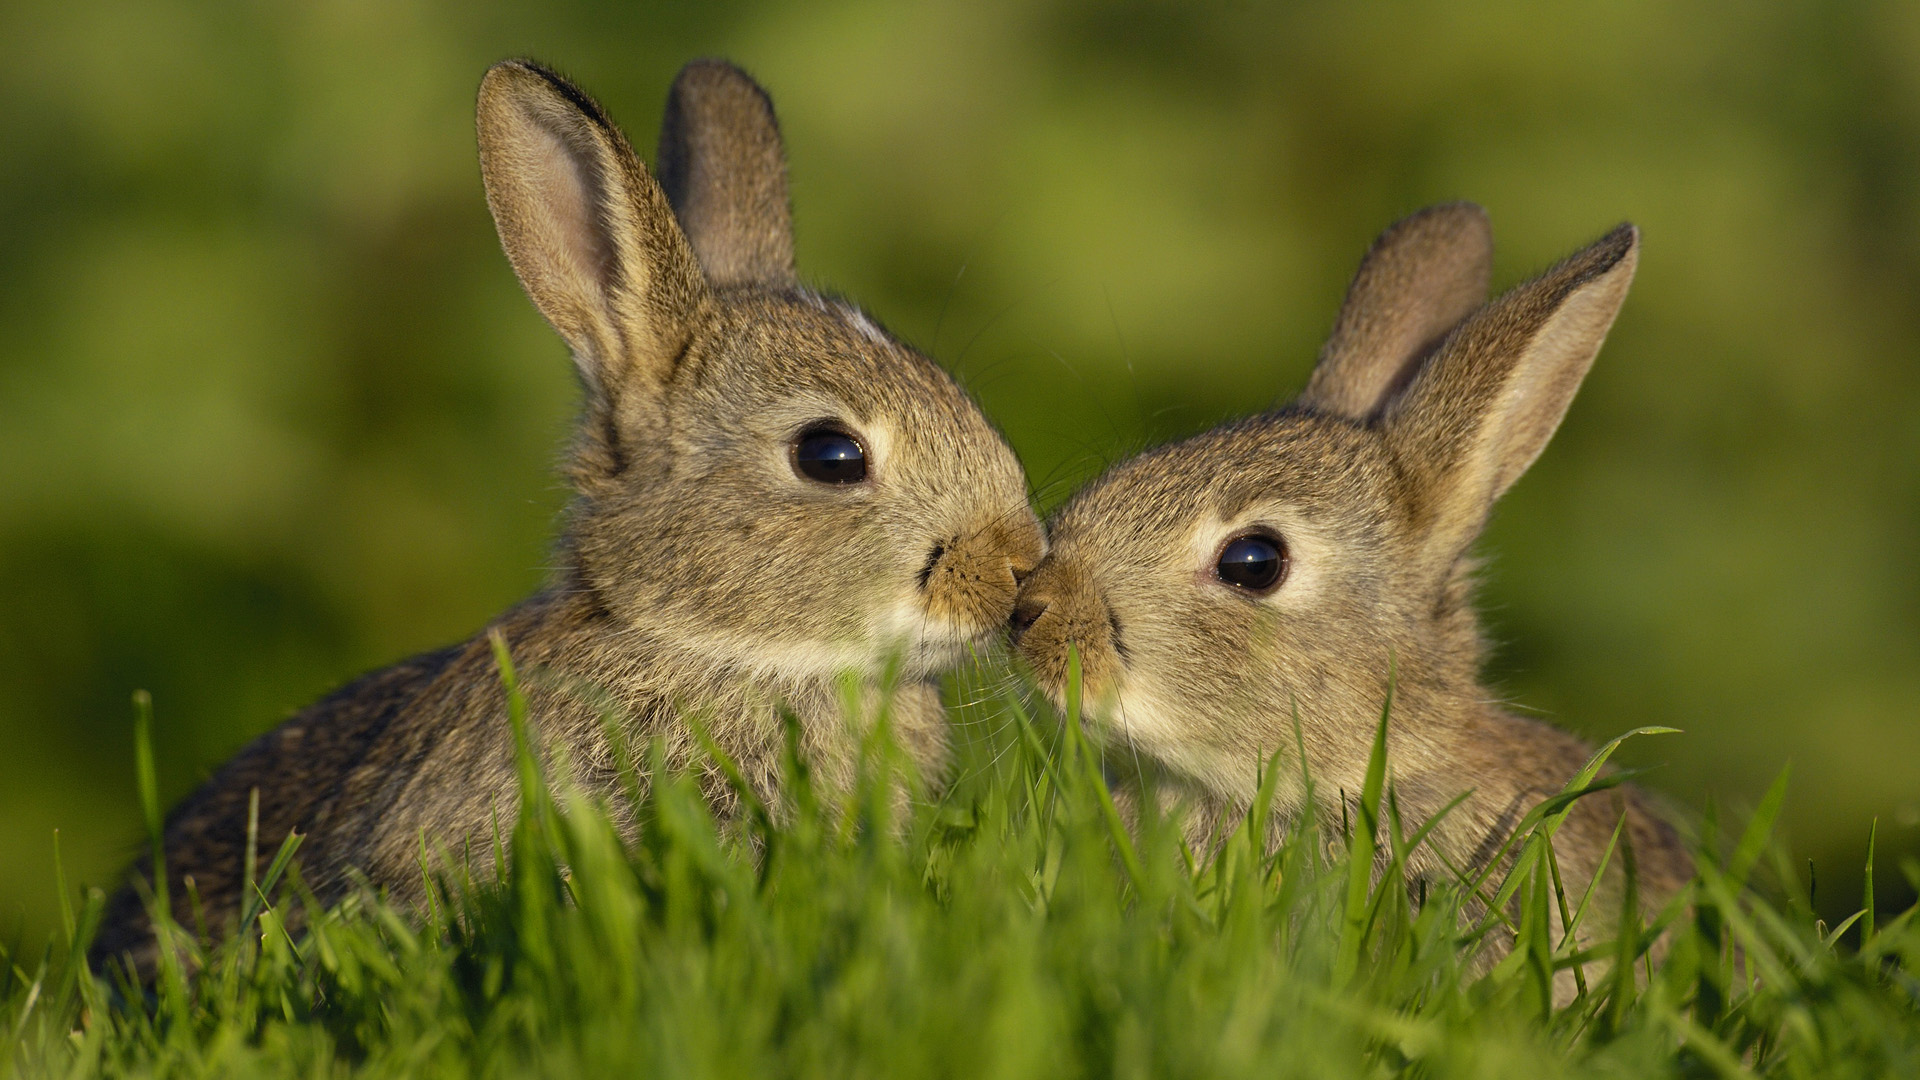 Animals Hd Wallpapers 2015 Funny Kissing Hugging Baby: Hase HD Wallpaper